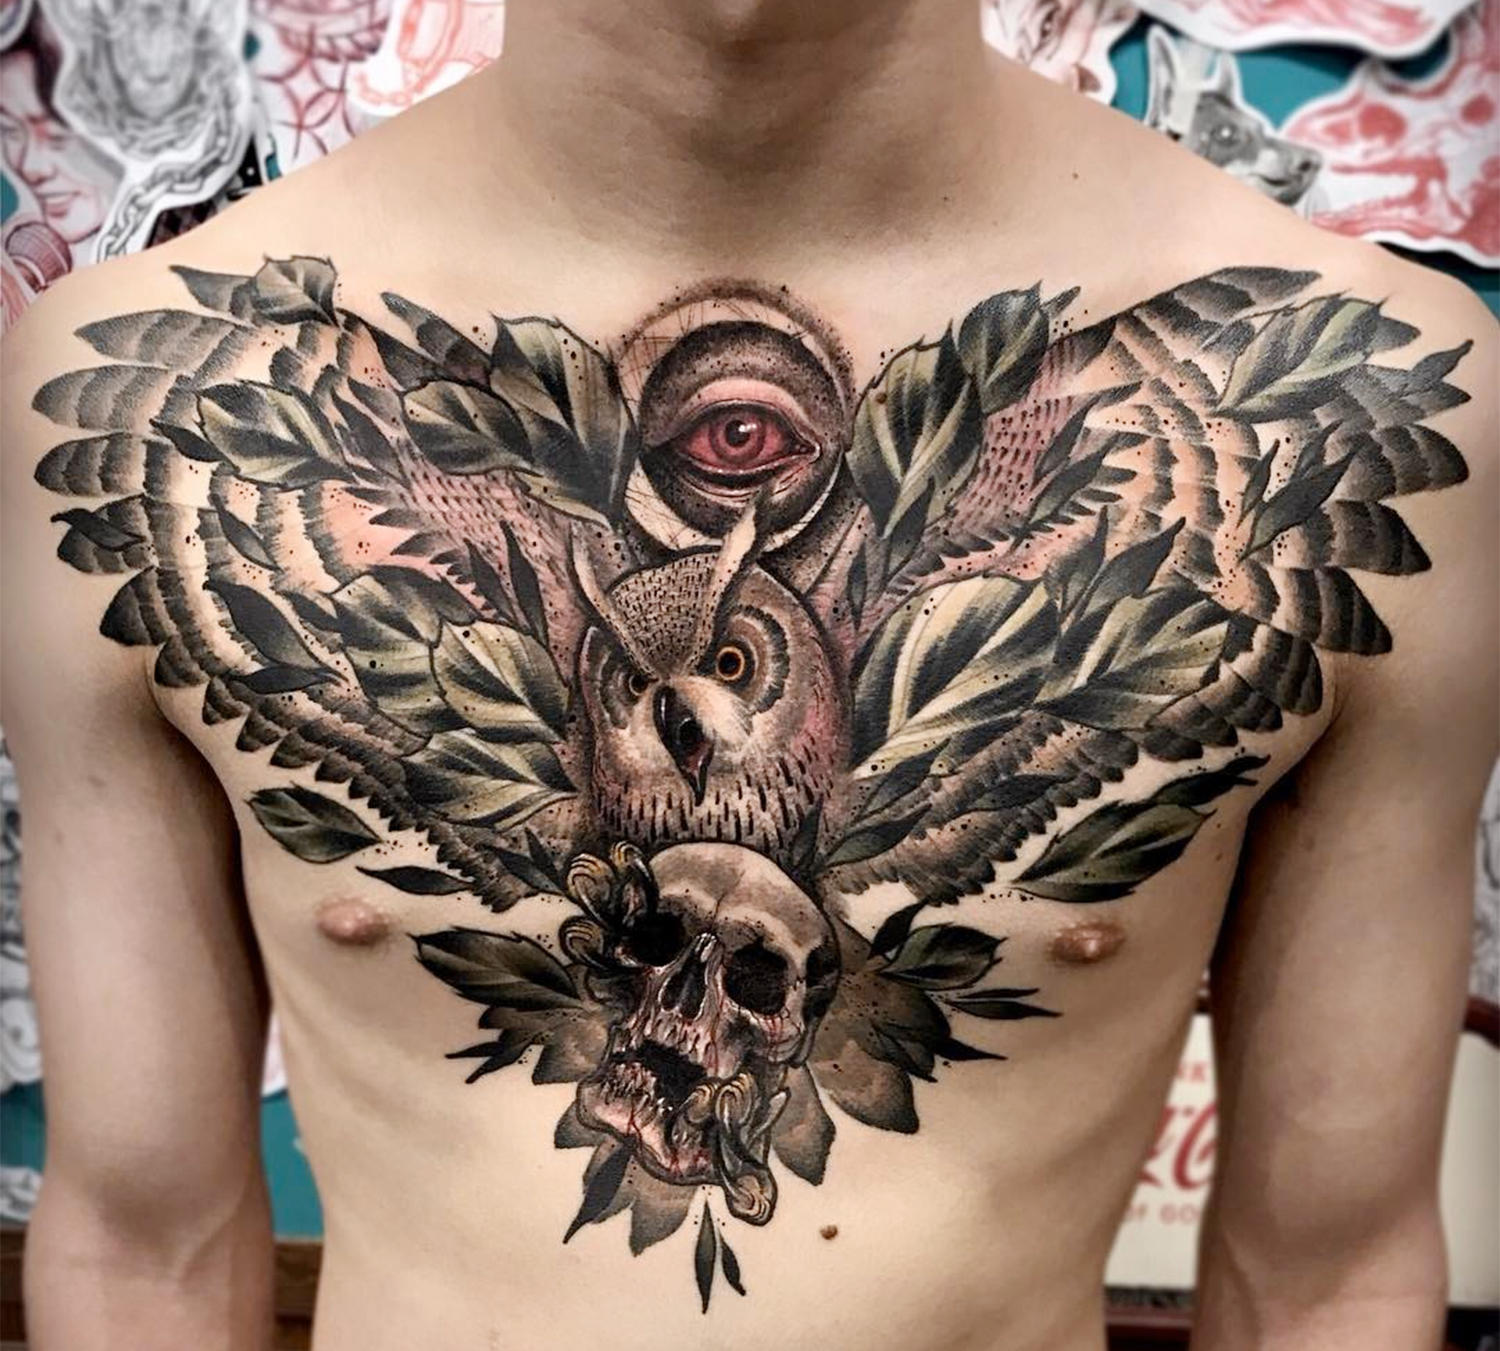 Chest tattooo by varo